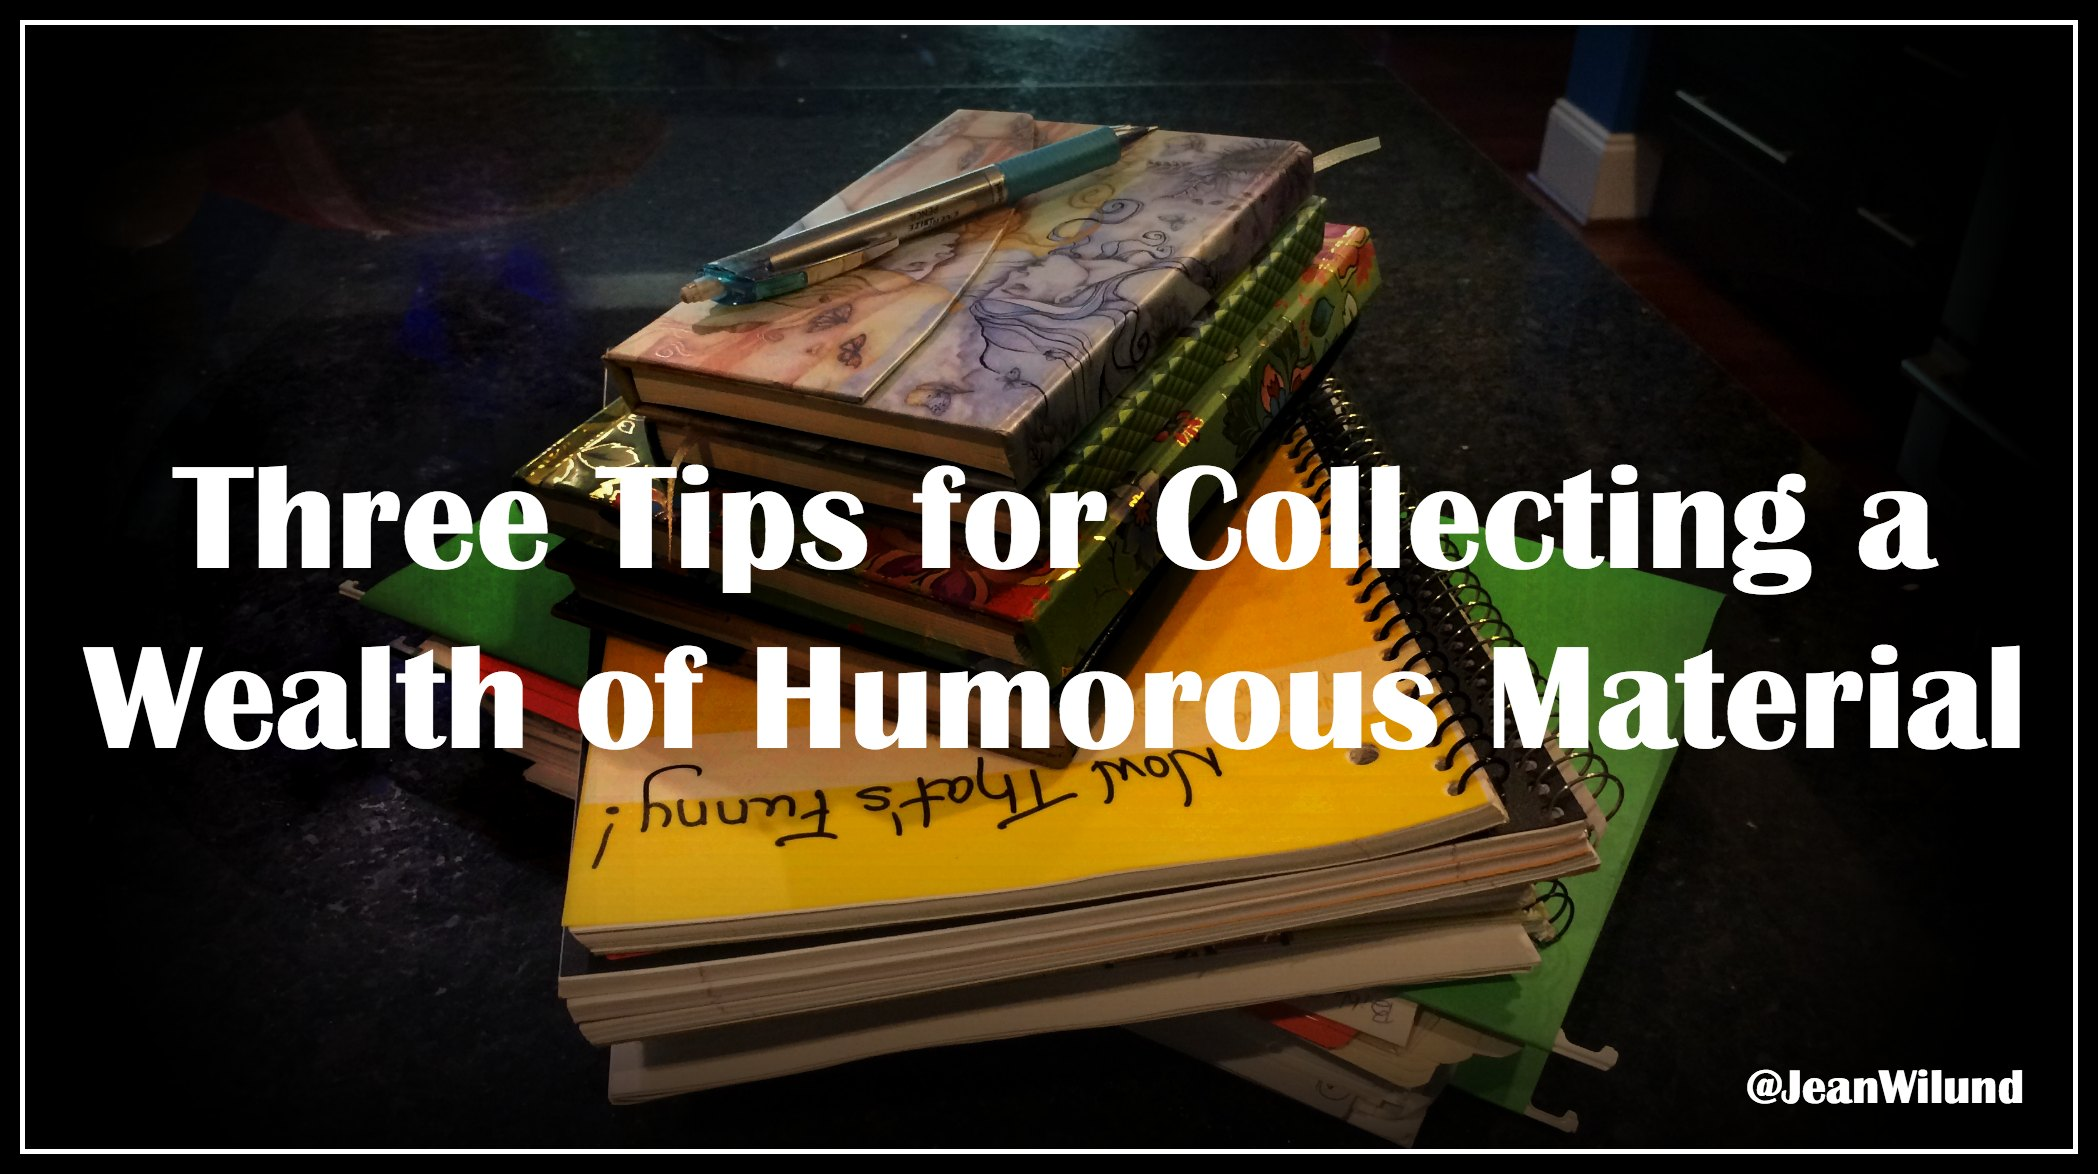 Click to read 3 Tips for Collecting a Wealth of Humorous Material (@JeanWilund)